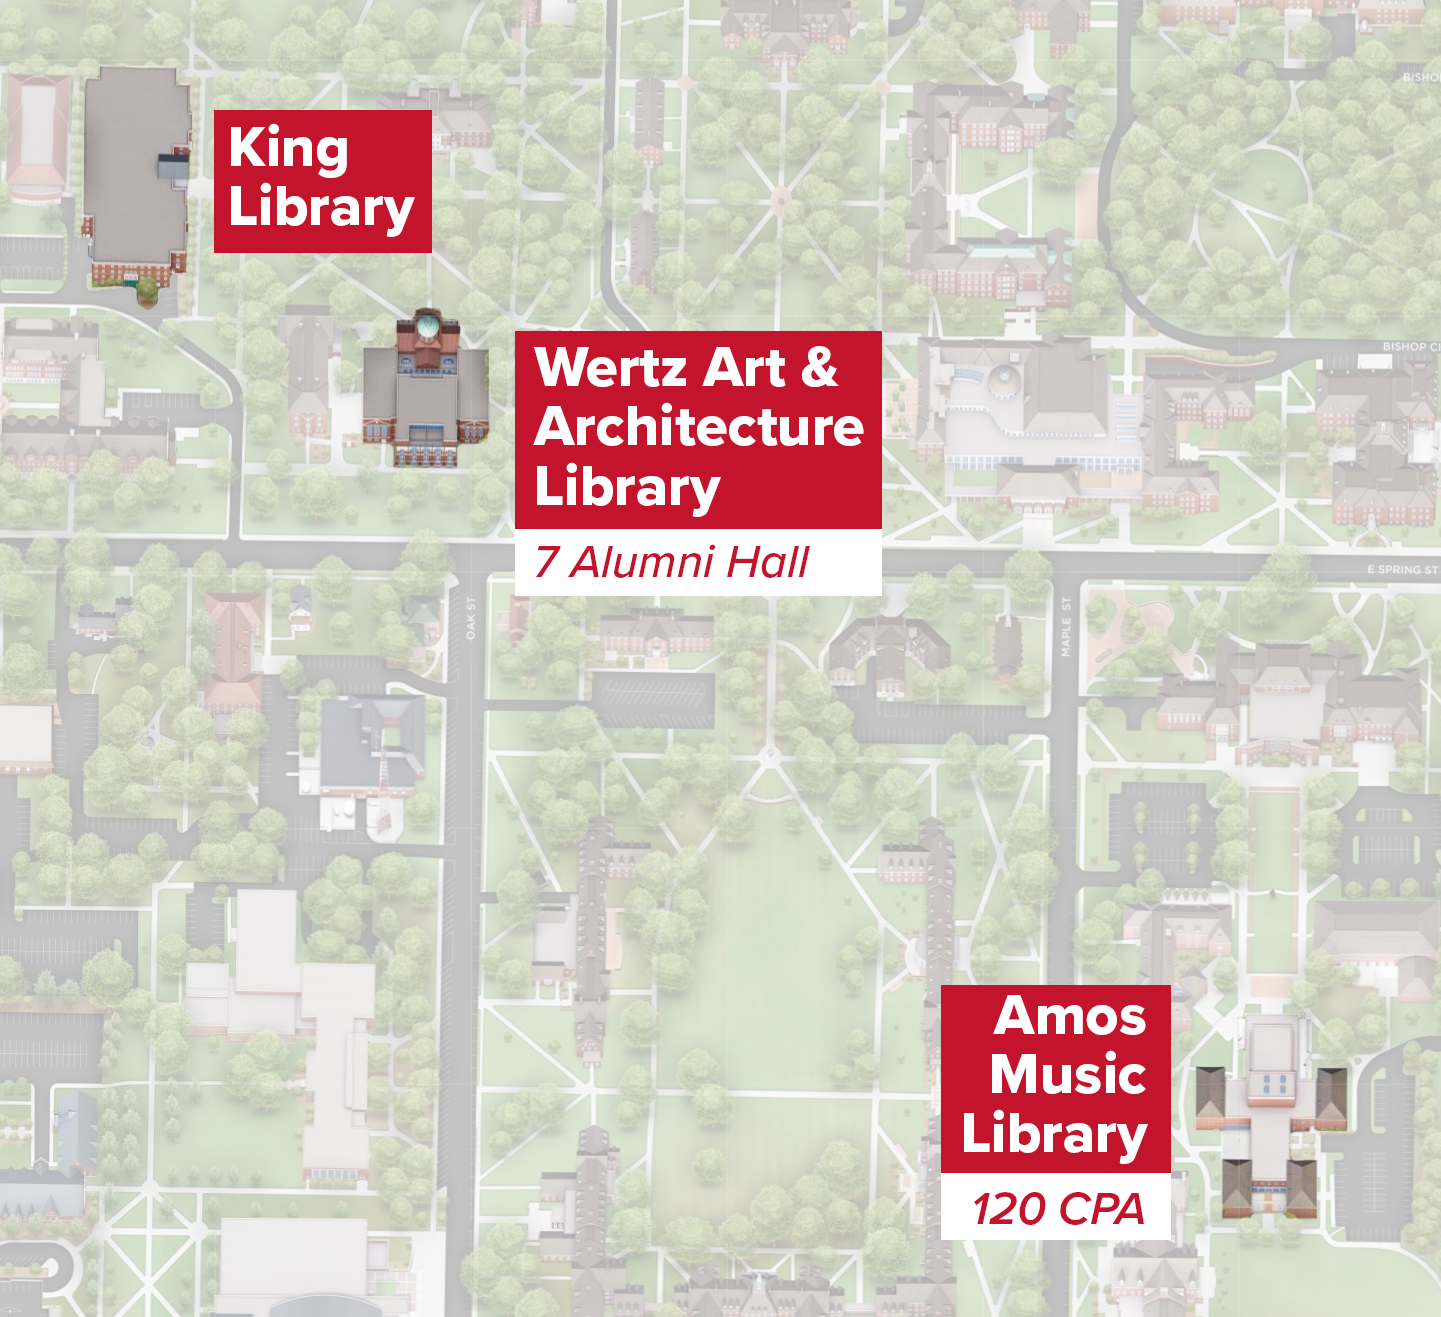 An illustrated Miami University campus map with King Library, Alumni Hall, and the Center for Performing Arts highlighted, along with text alongside each building indicating King LIbrary, Wertz Art & Architecture Library, and Amos Music Library respectively.